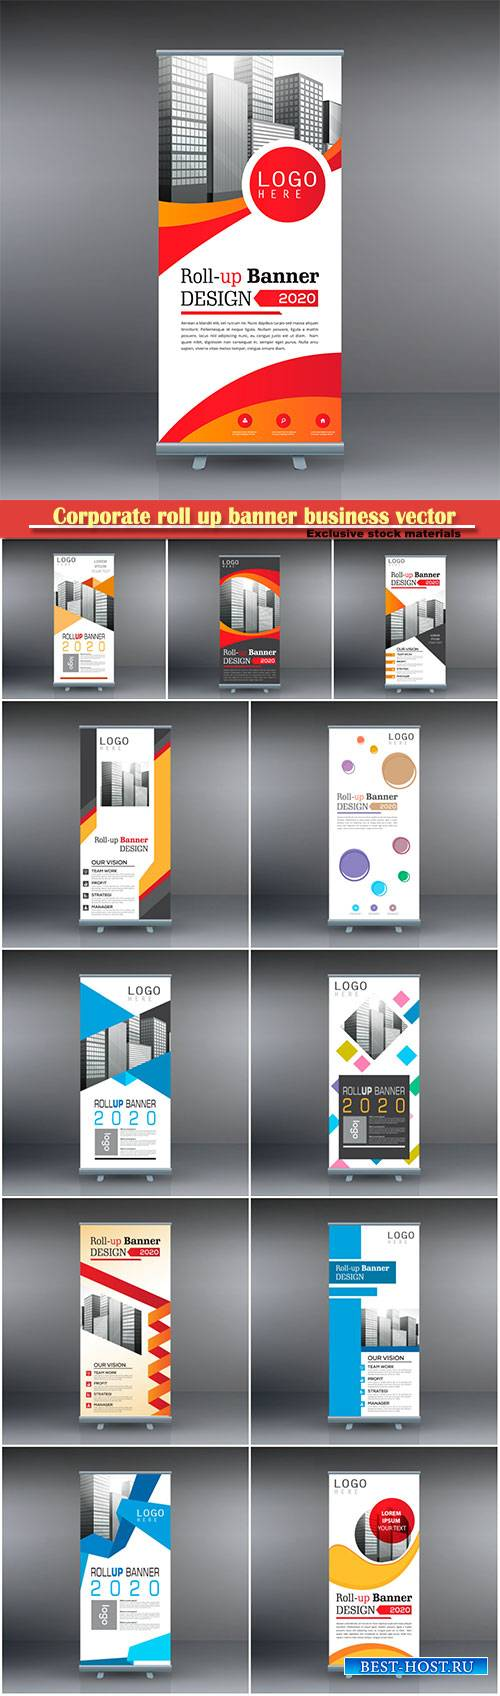 Corporate roll up banner business vector template # 2